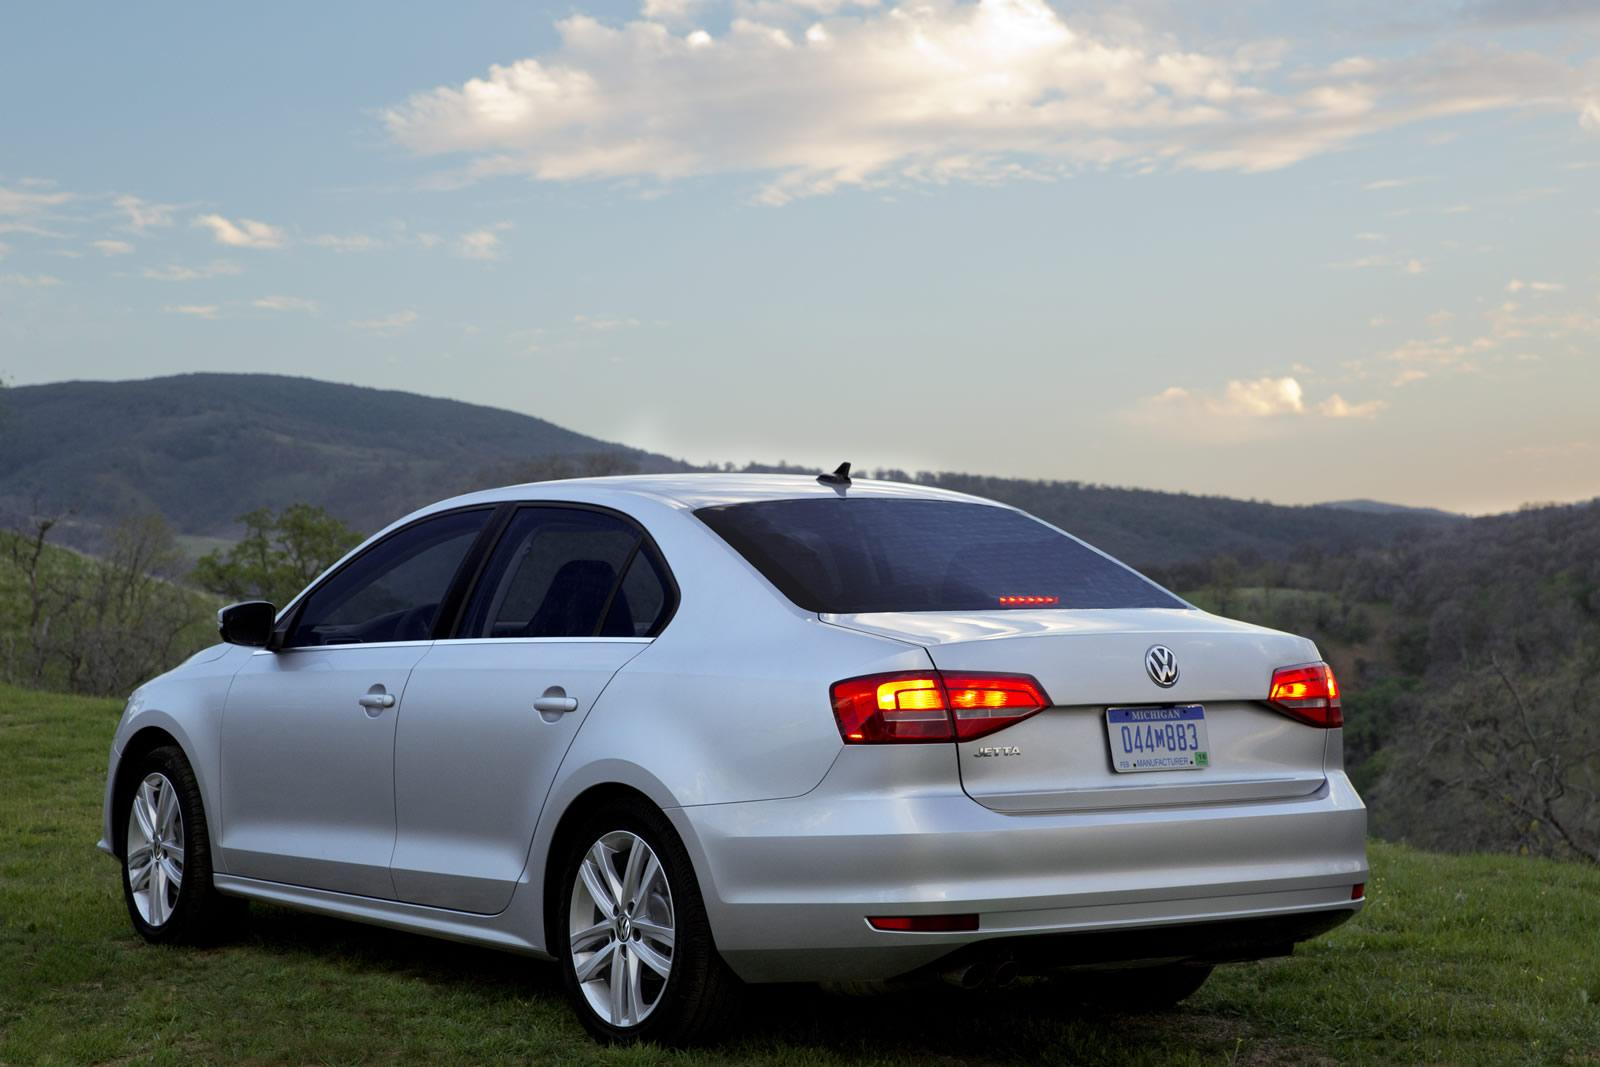 Volkswagen Announces 2015 Jetta US Pricing, Keeps 2.0L Entry-Level Engine - autoevolution